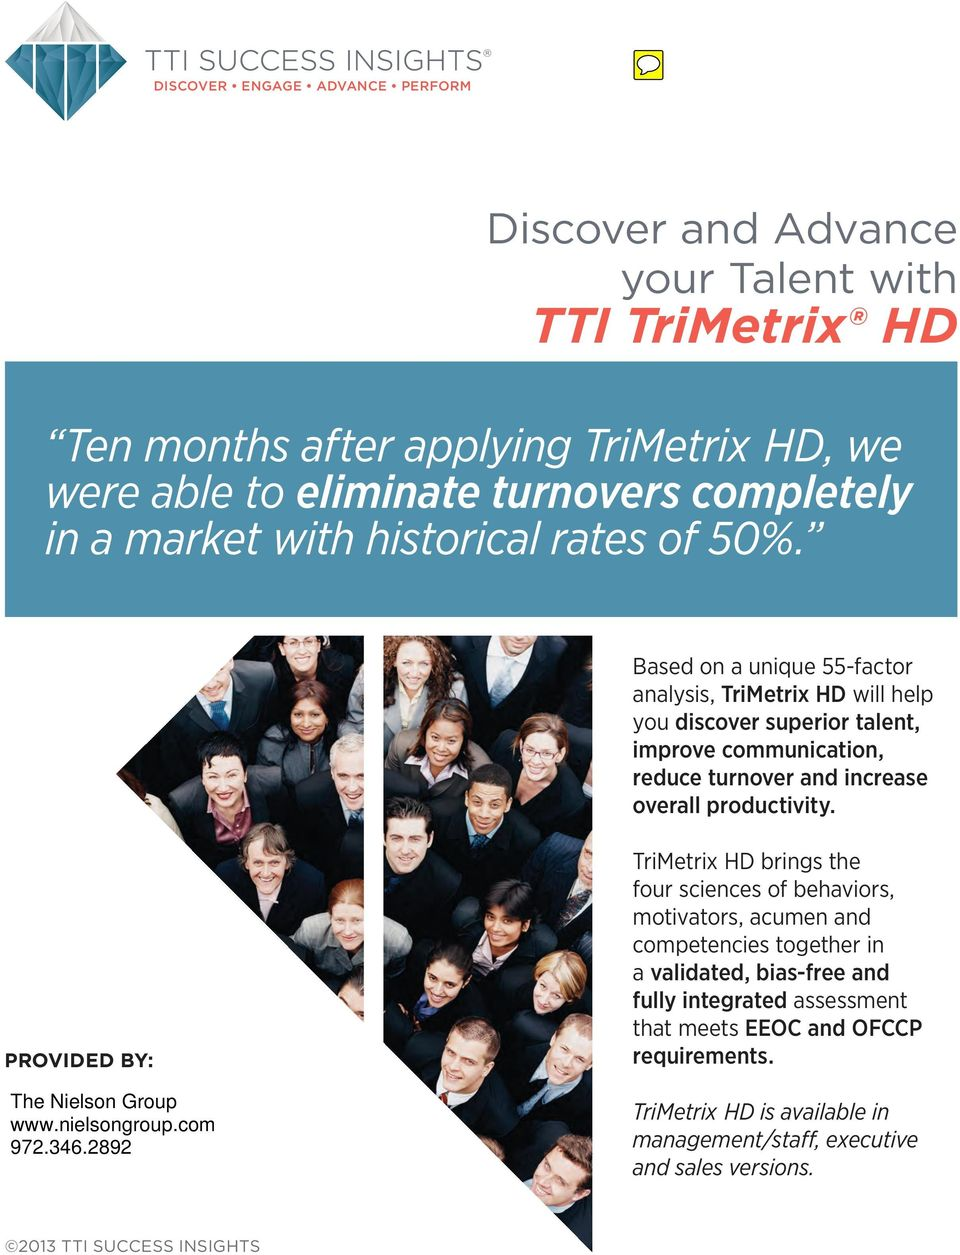 Based on a unique 55-factor analysis, TriMetrix HD will help you discover superior talent, improve communication, reduce turnover and increase overall productivity.